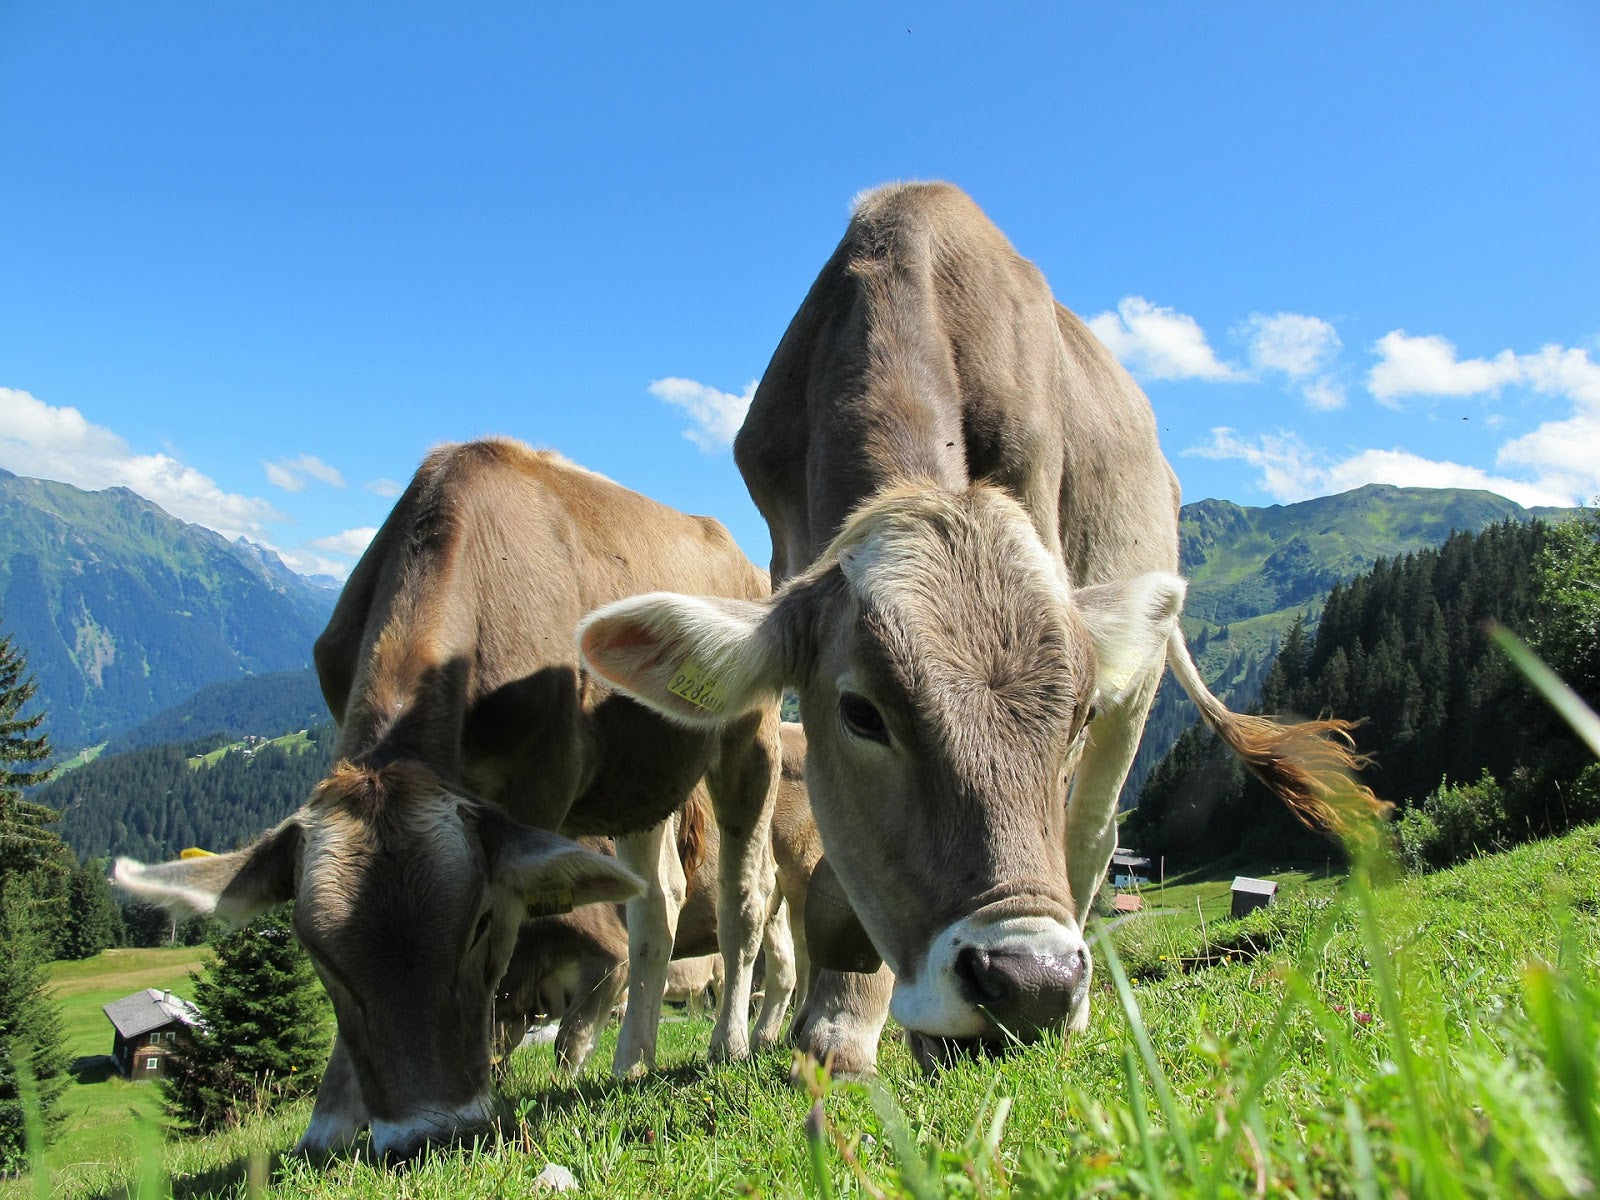 Herbs for inflammation: Cows grazing on grass in a pastoral setting